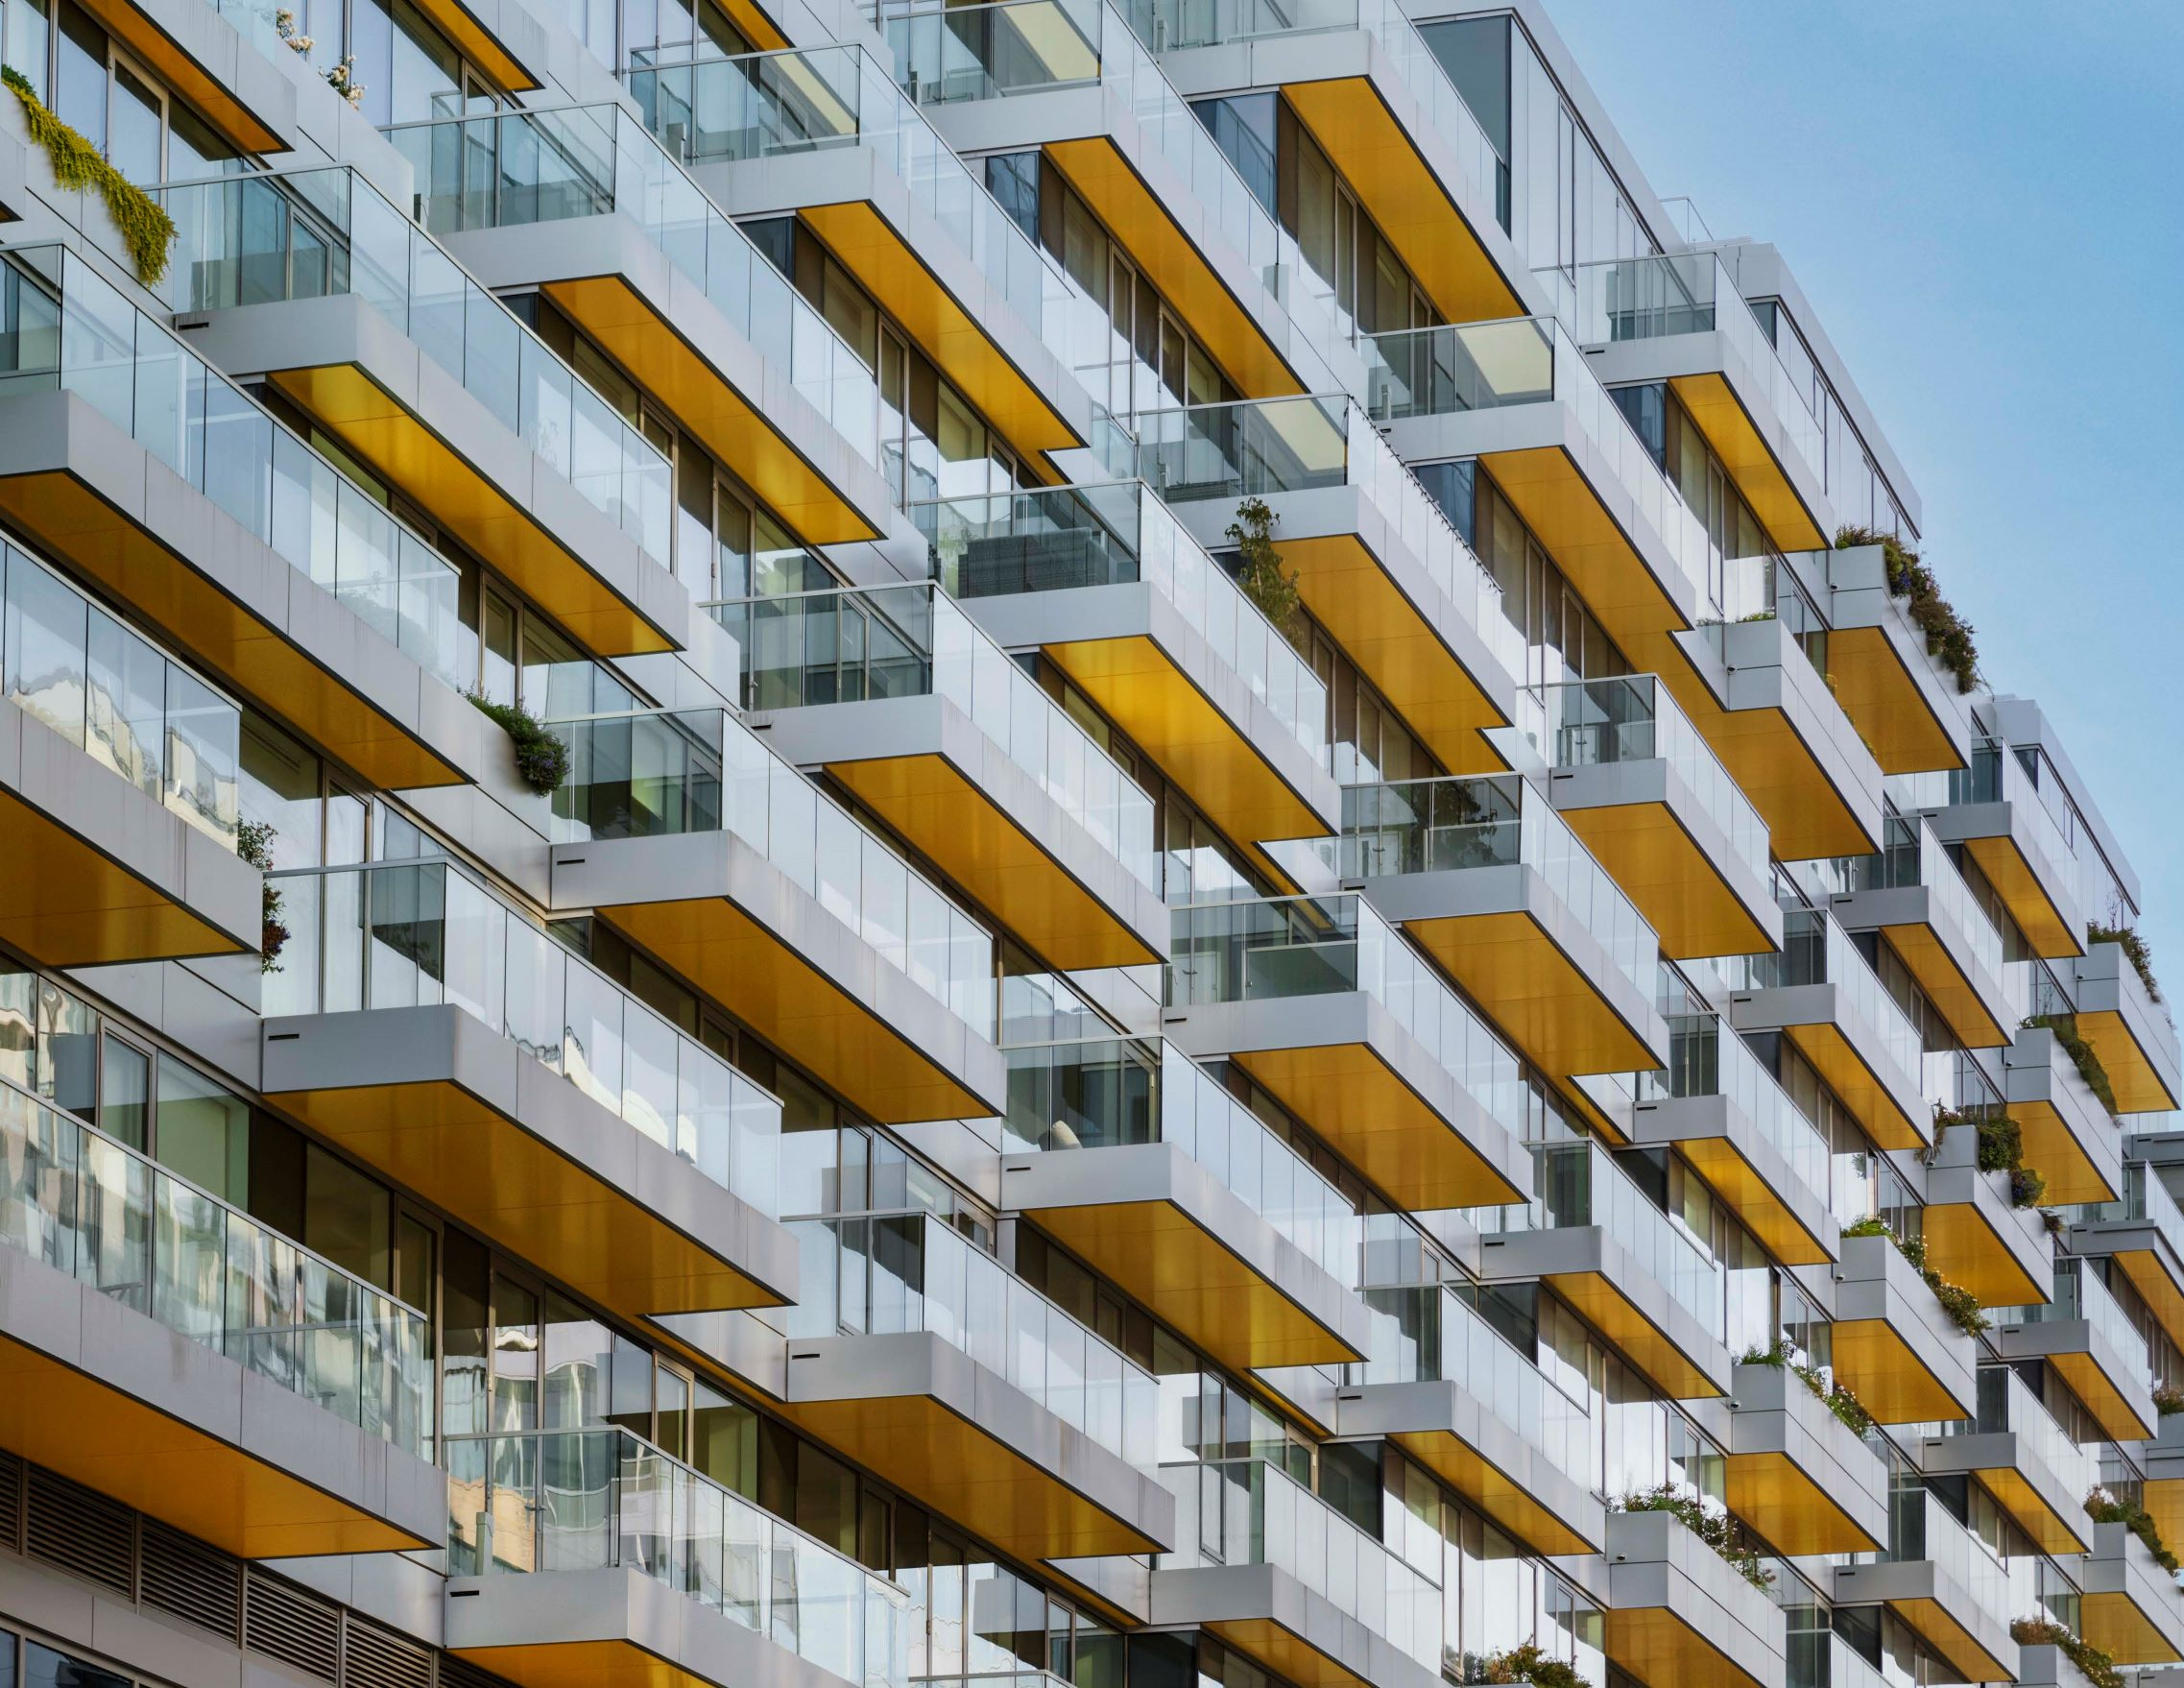 Synergi's glass guardrail along the balconies of West Half, located in the Navy Yard neighborhood of Washington, DC